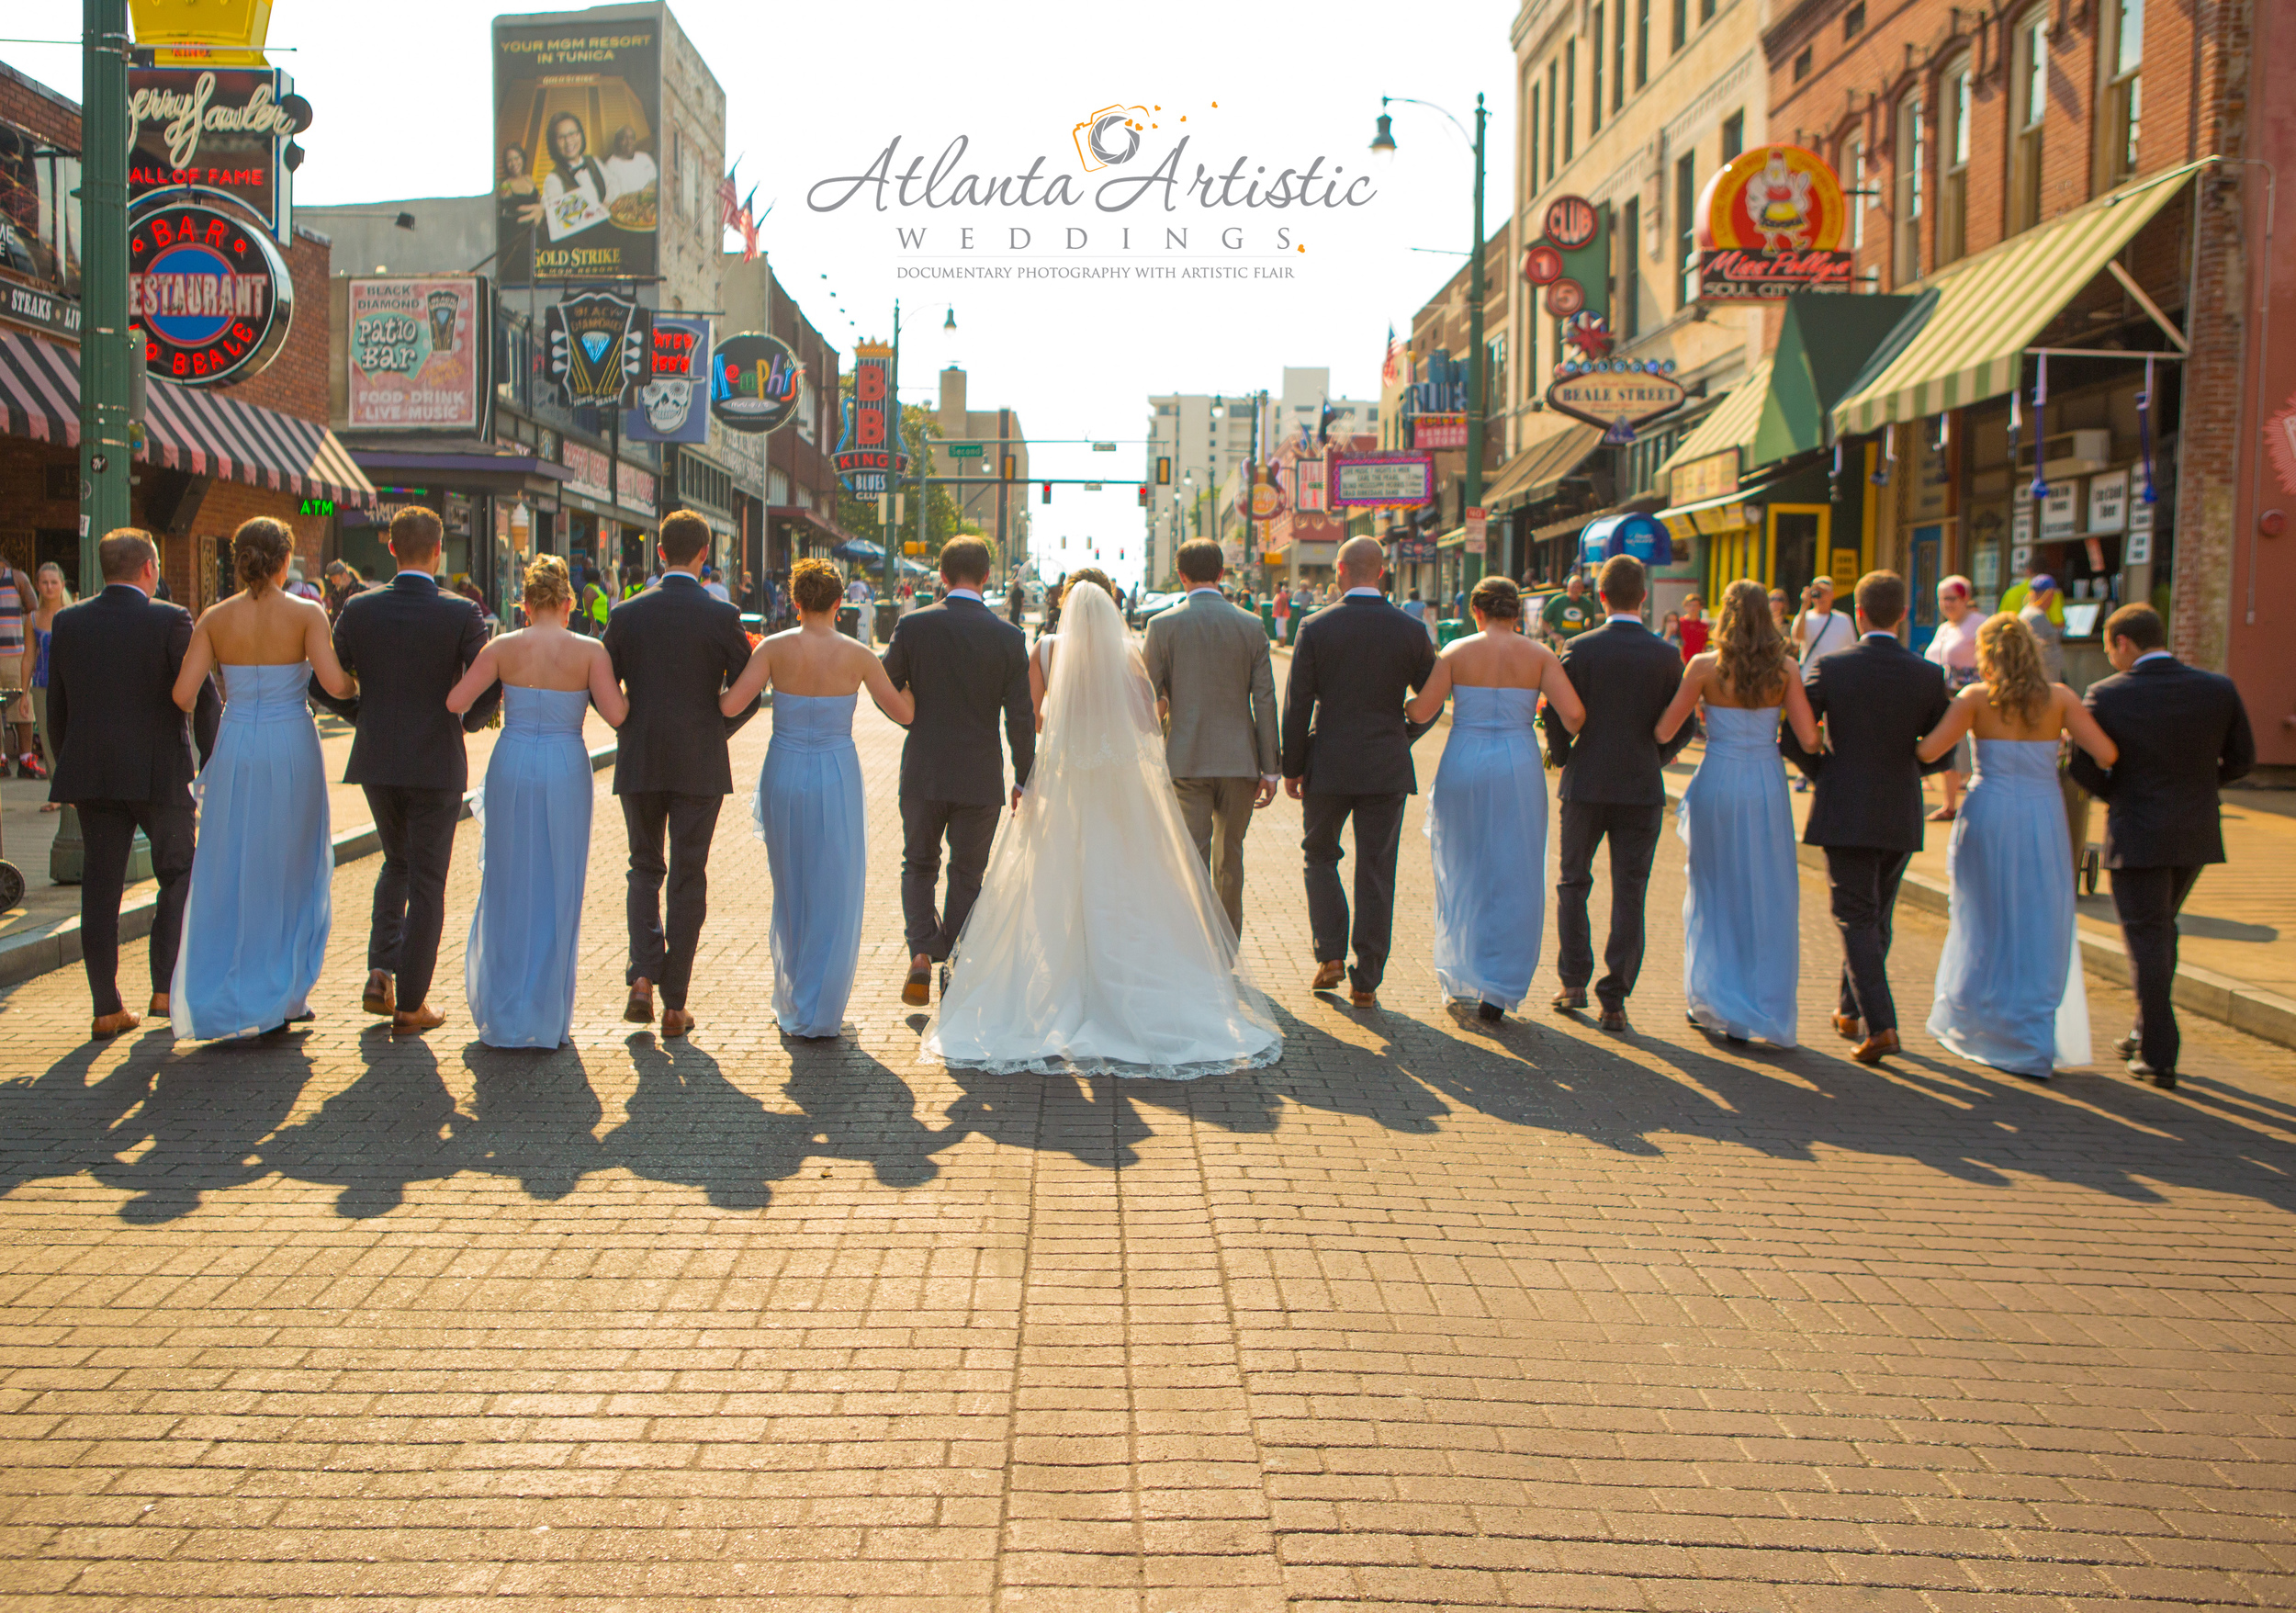 Wedding photography by  www.AtlnataArtisticWeddings.com